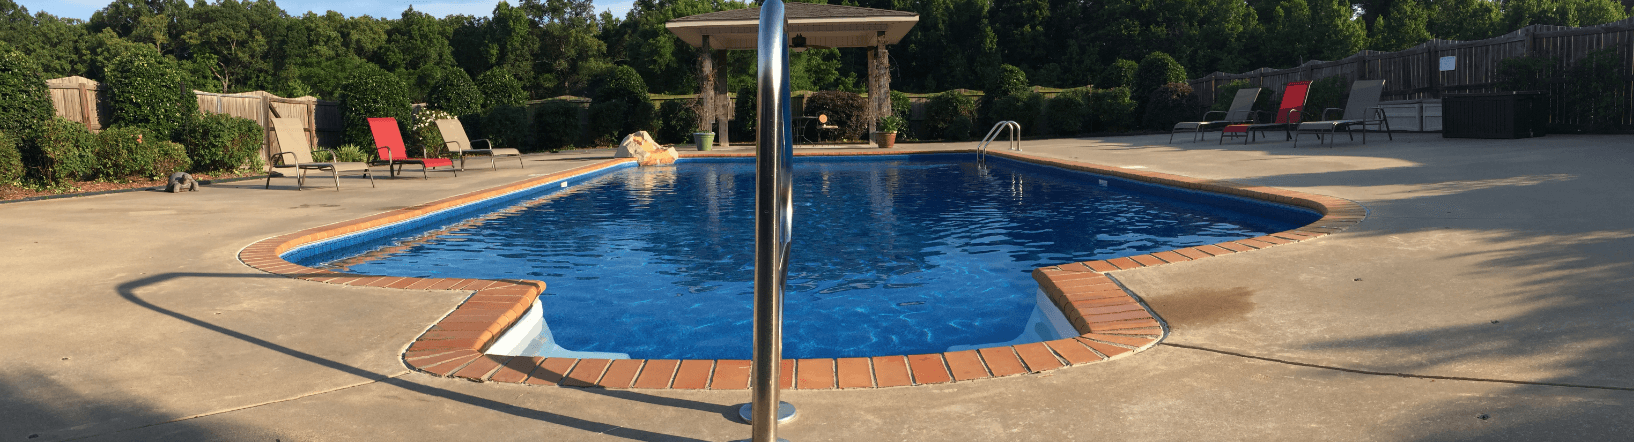 Pools Jacksonville Arkansas